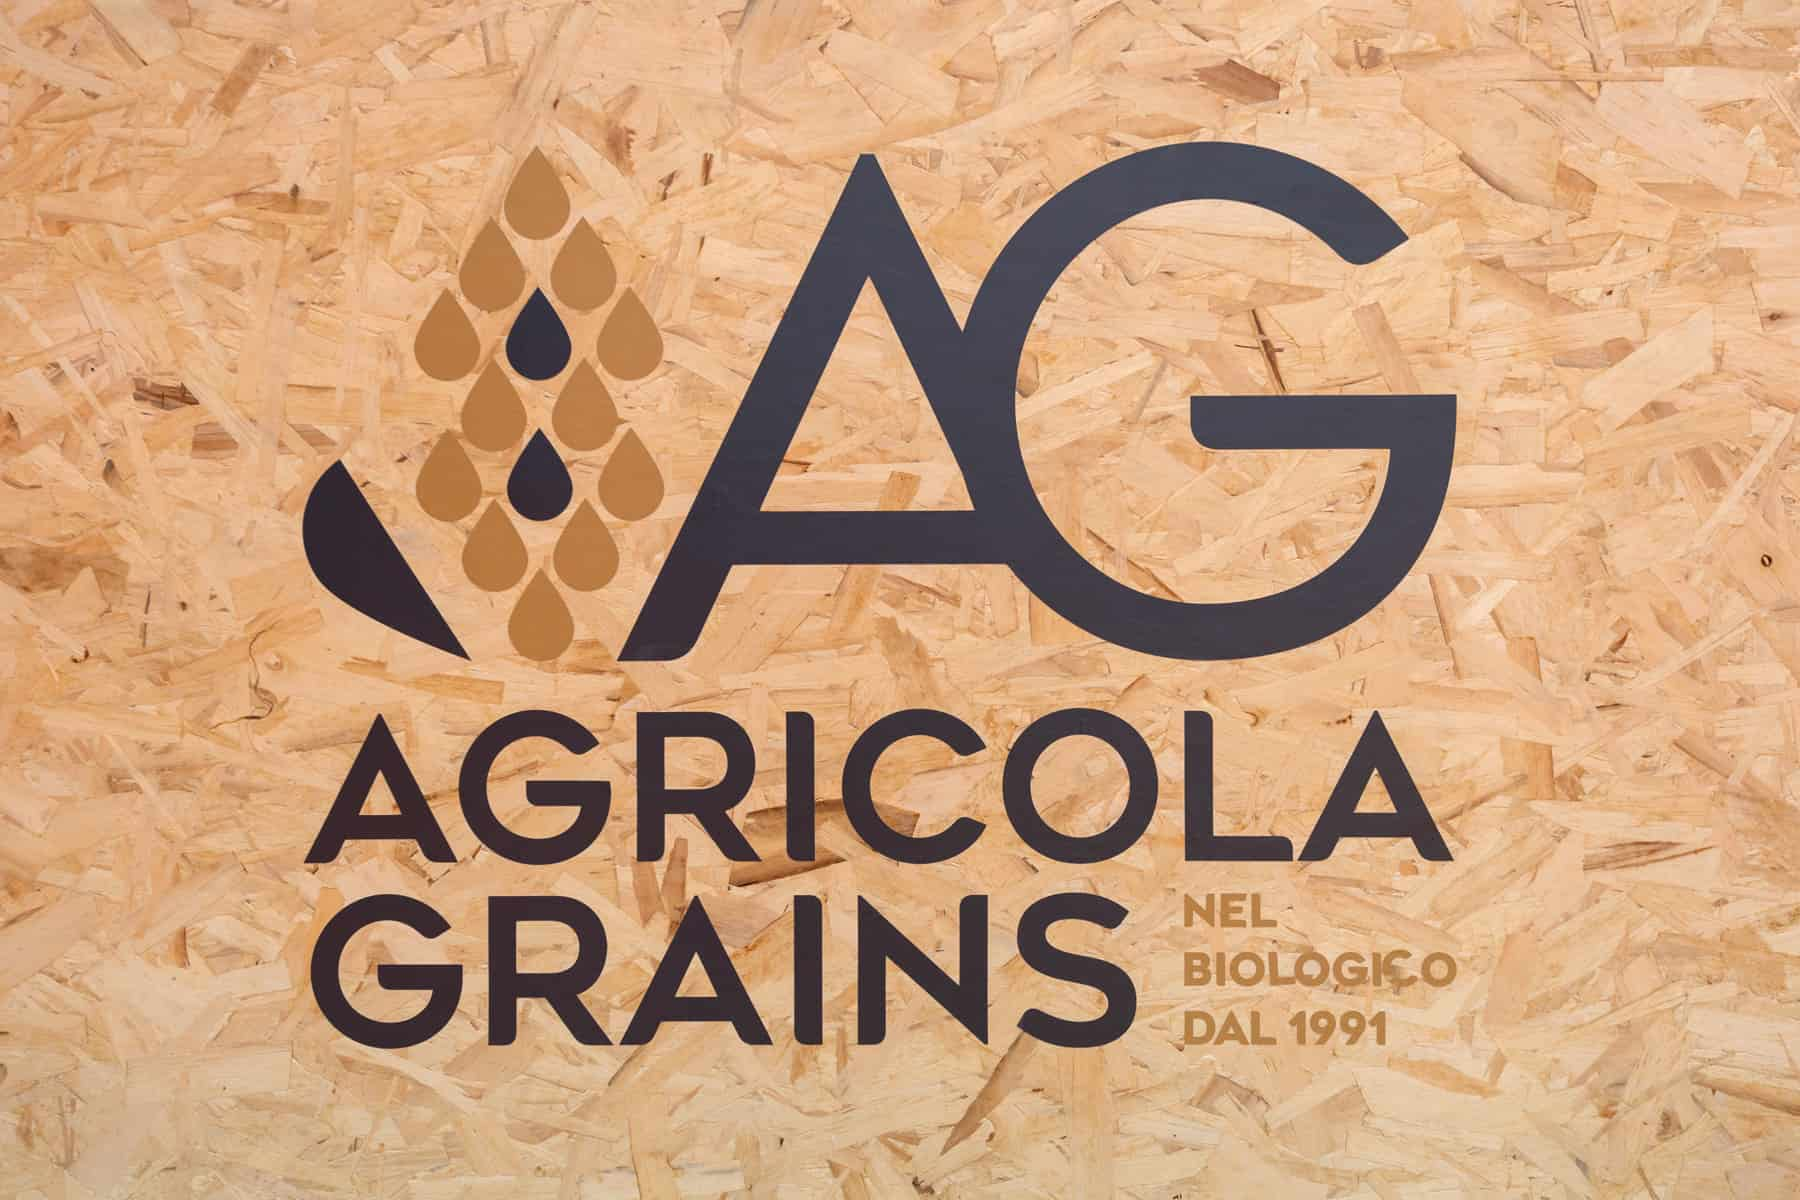 Agricola grains fiere bio (27)